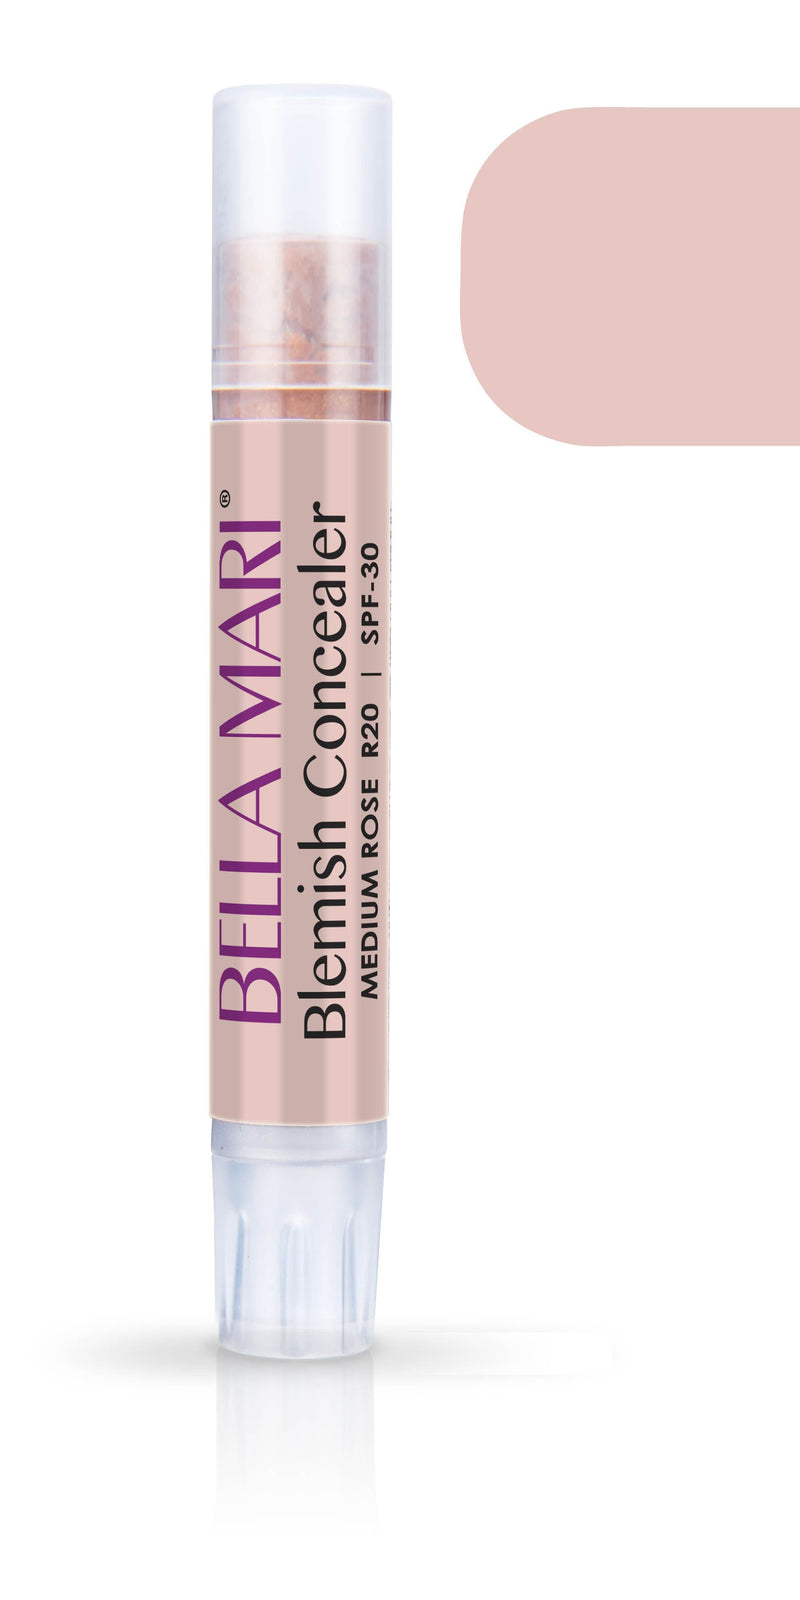 Bella Mari Natural Blemish Concealer Stick; 0.1floz - Bella Mari Natural Blemish Concealer Stick; 0.1floz - Medium Rose